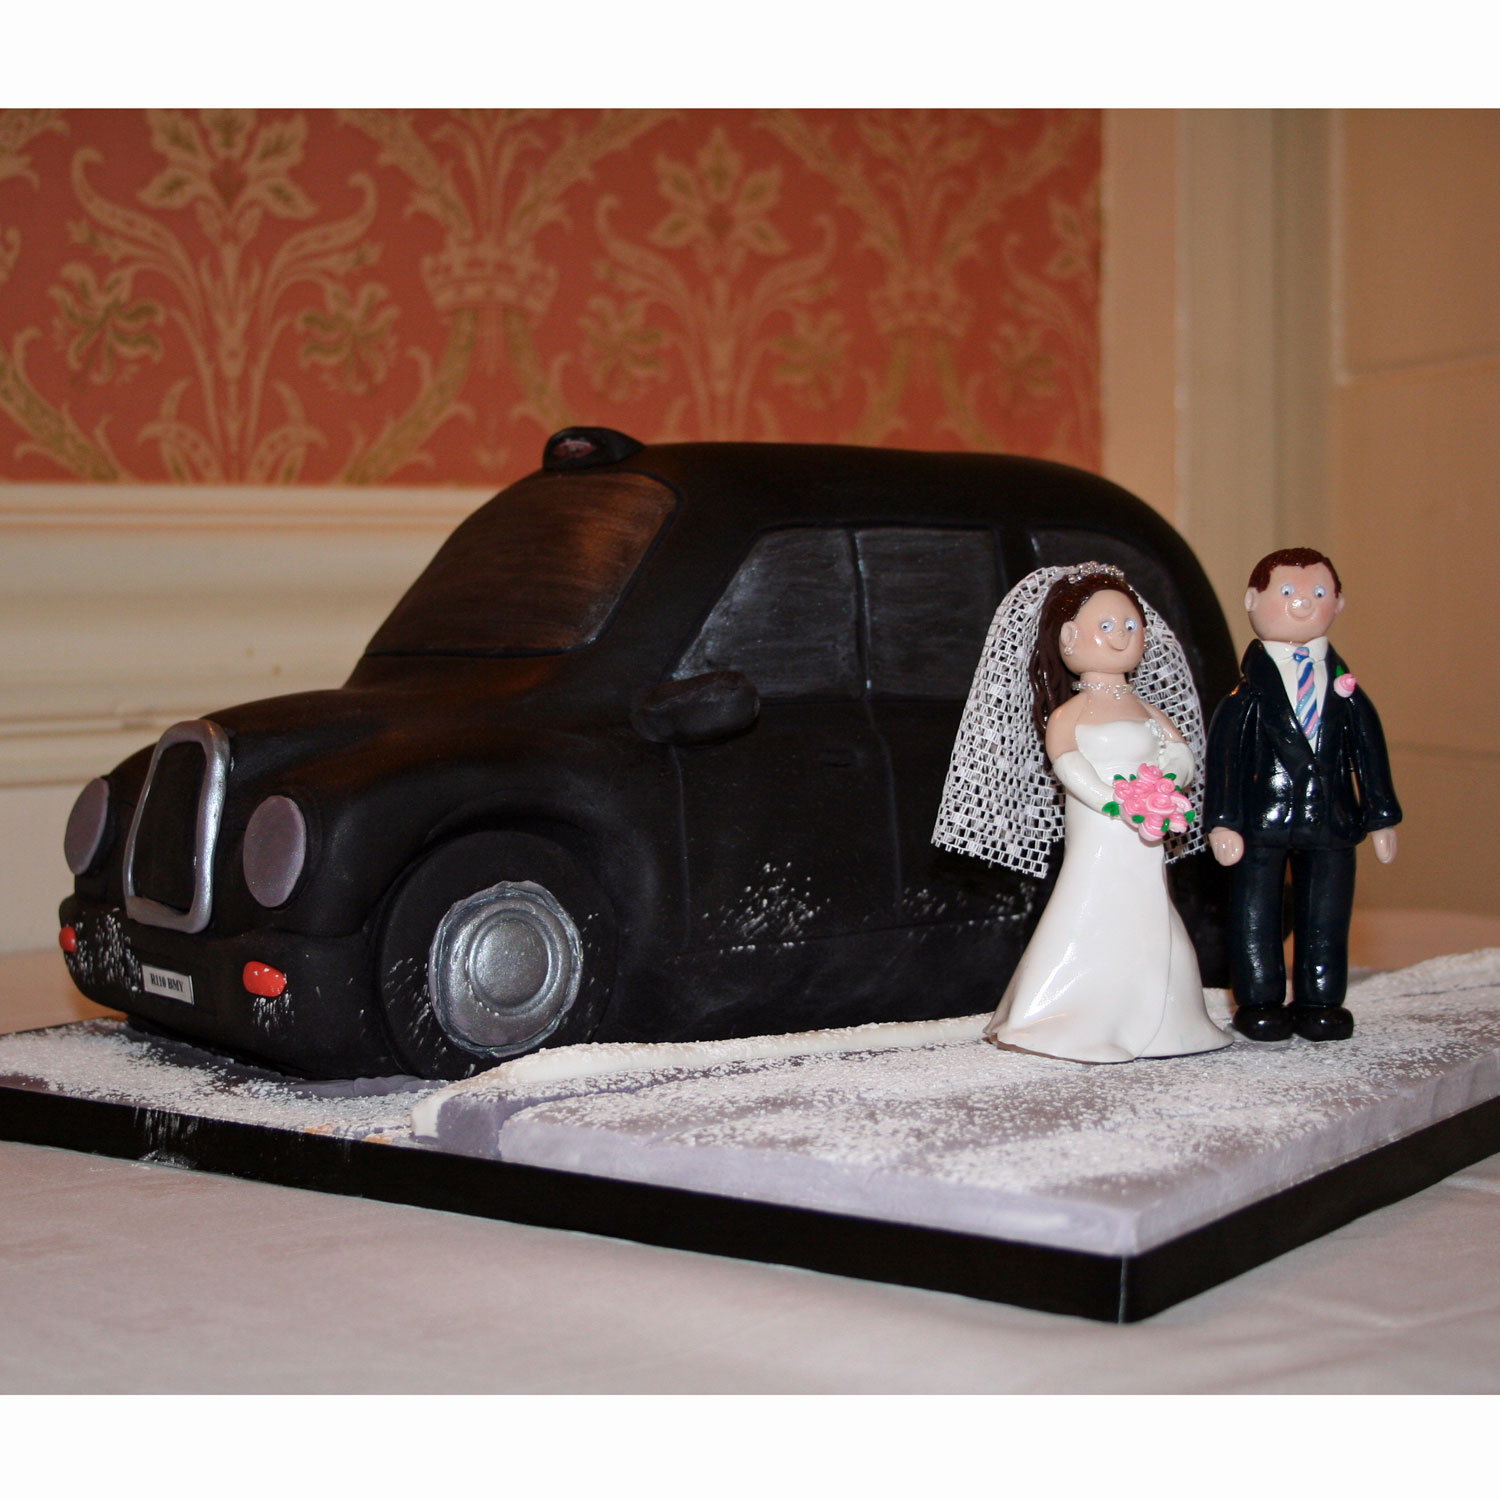 Black Taxi Cab Wedding Cake